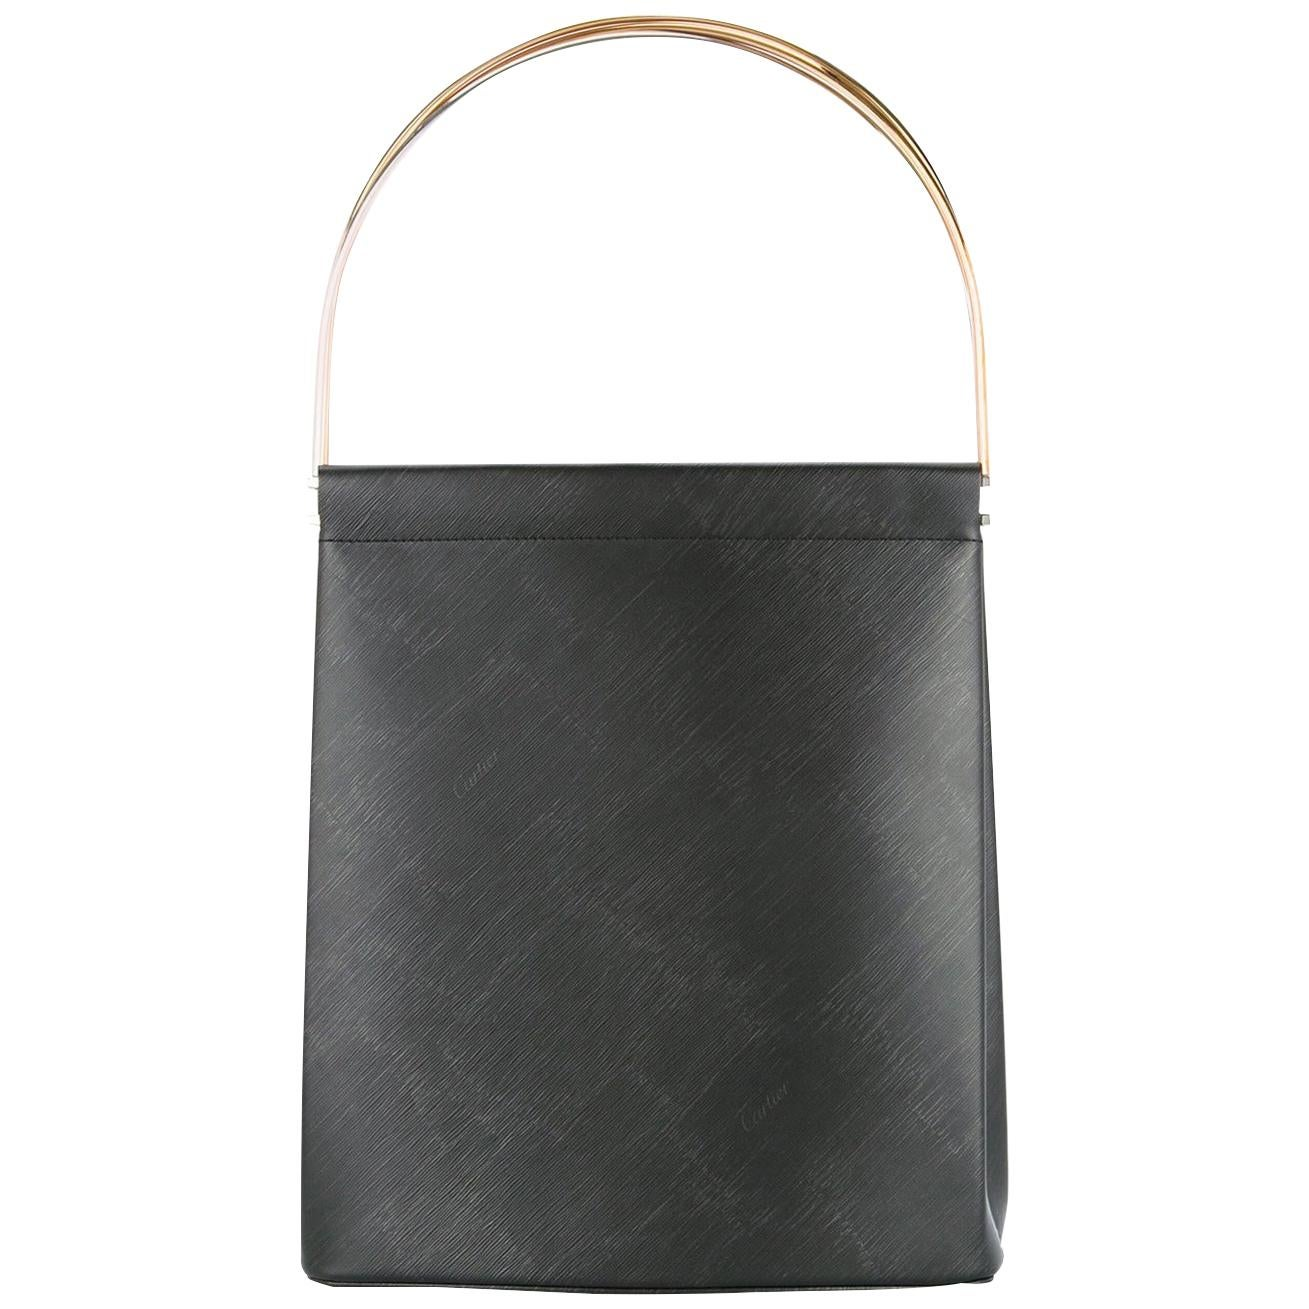 Cartier Black Leather Evening Kelly Style Top Handle Satchel Bag